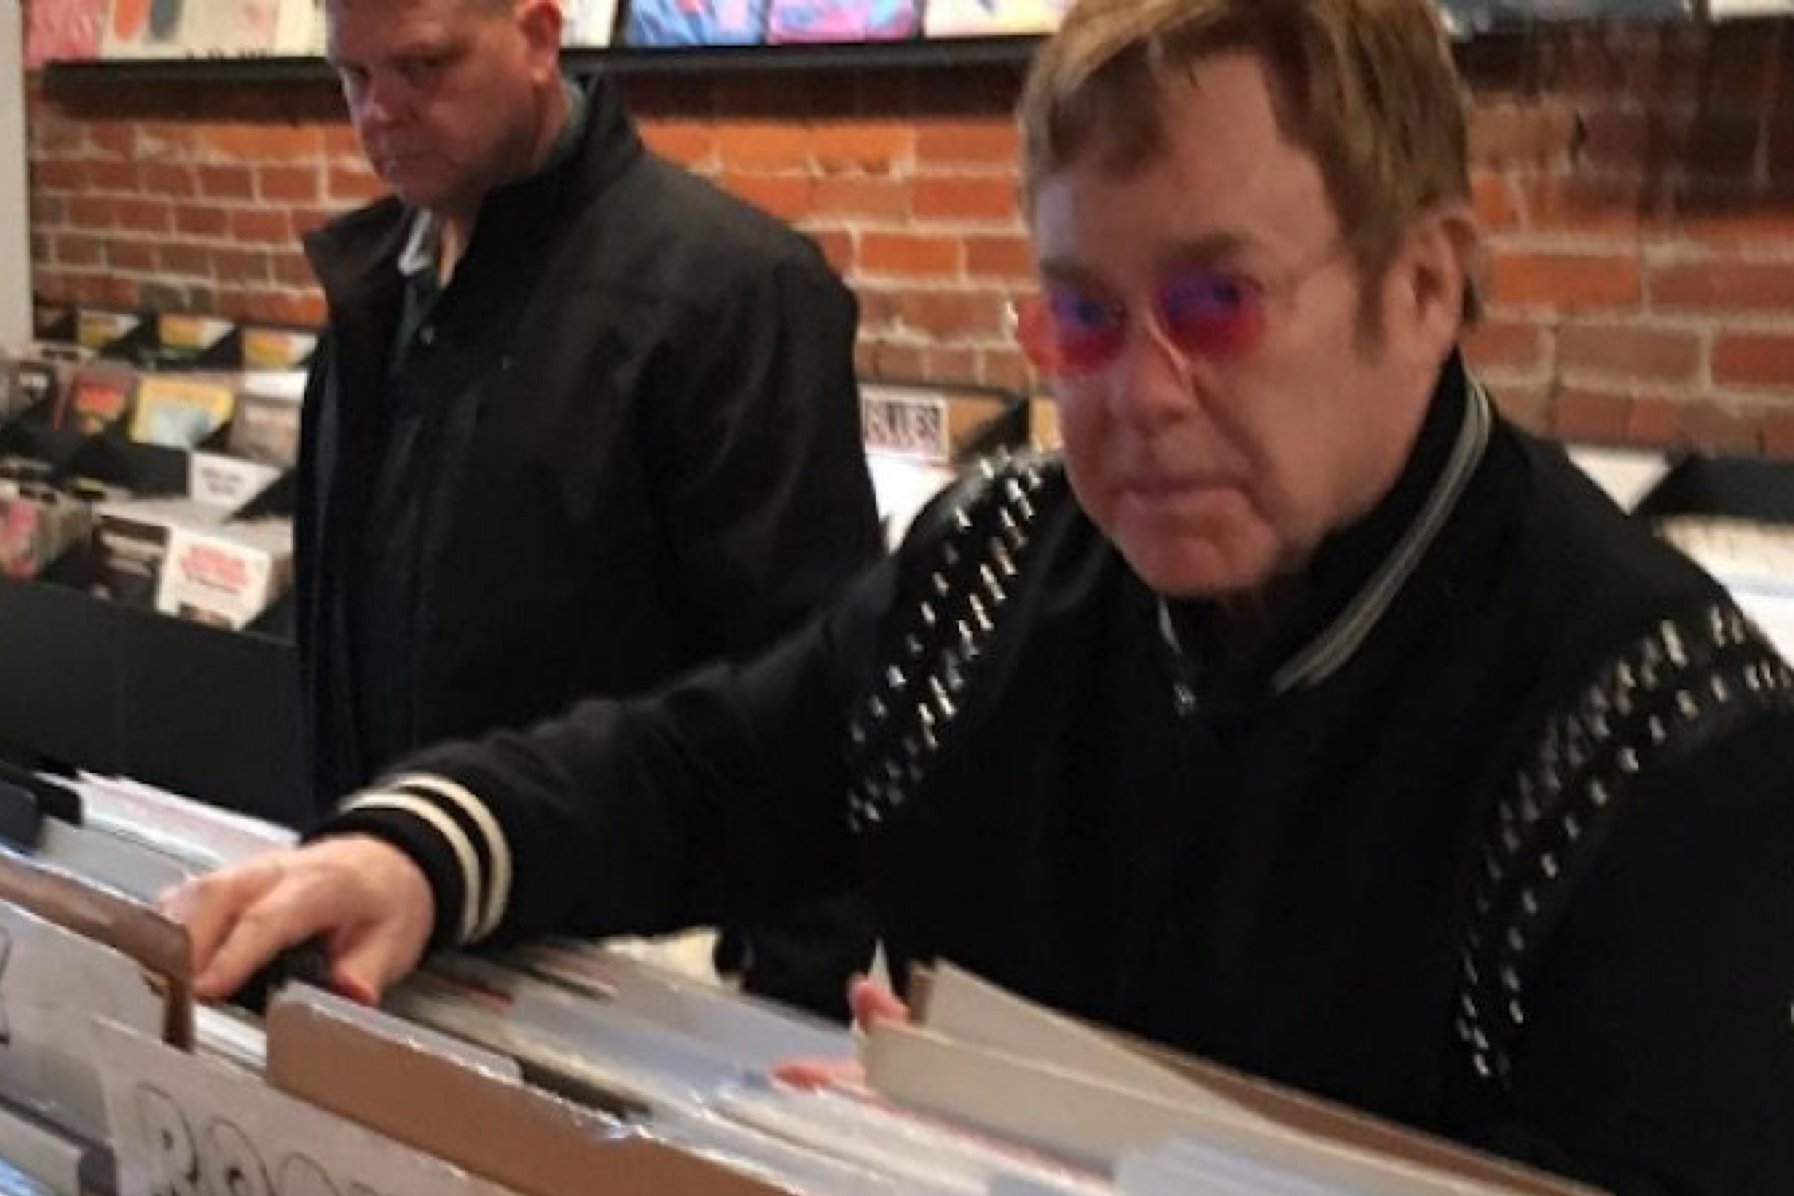 Elton John just spent a fortune on vinyl in Vancouver